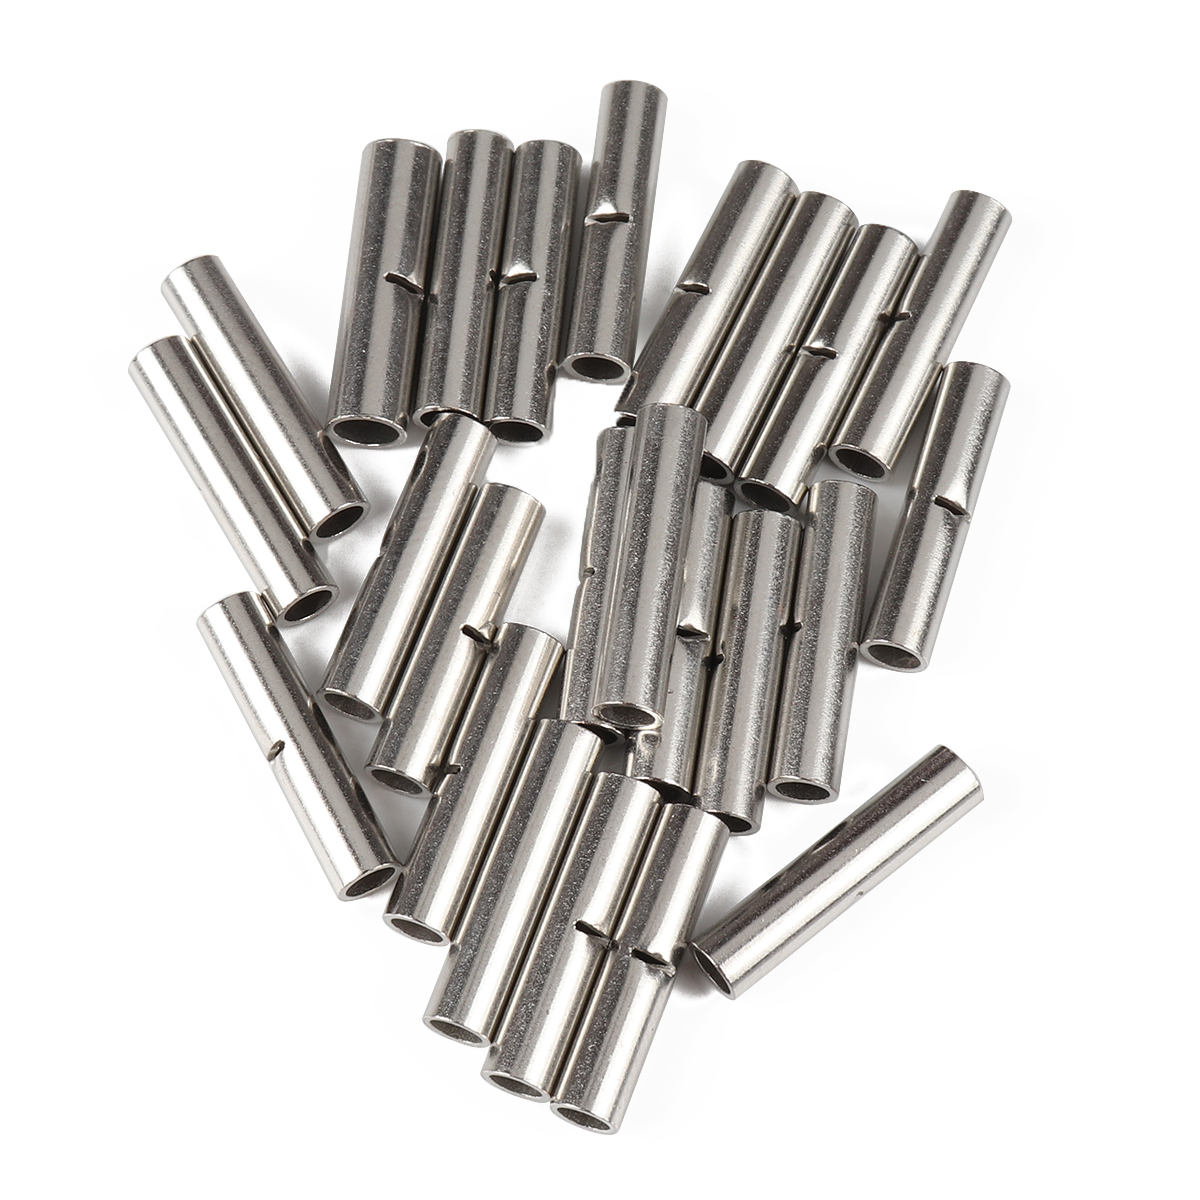 380pcs Terminal Heat Shrinkable Tube Set High Quality Car Ship Non-Insulated Butt Connector Terminal Heat Shrinkable Tube